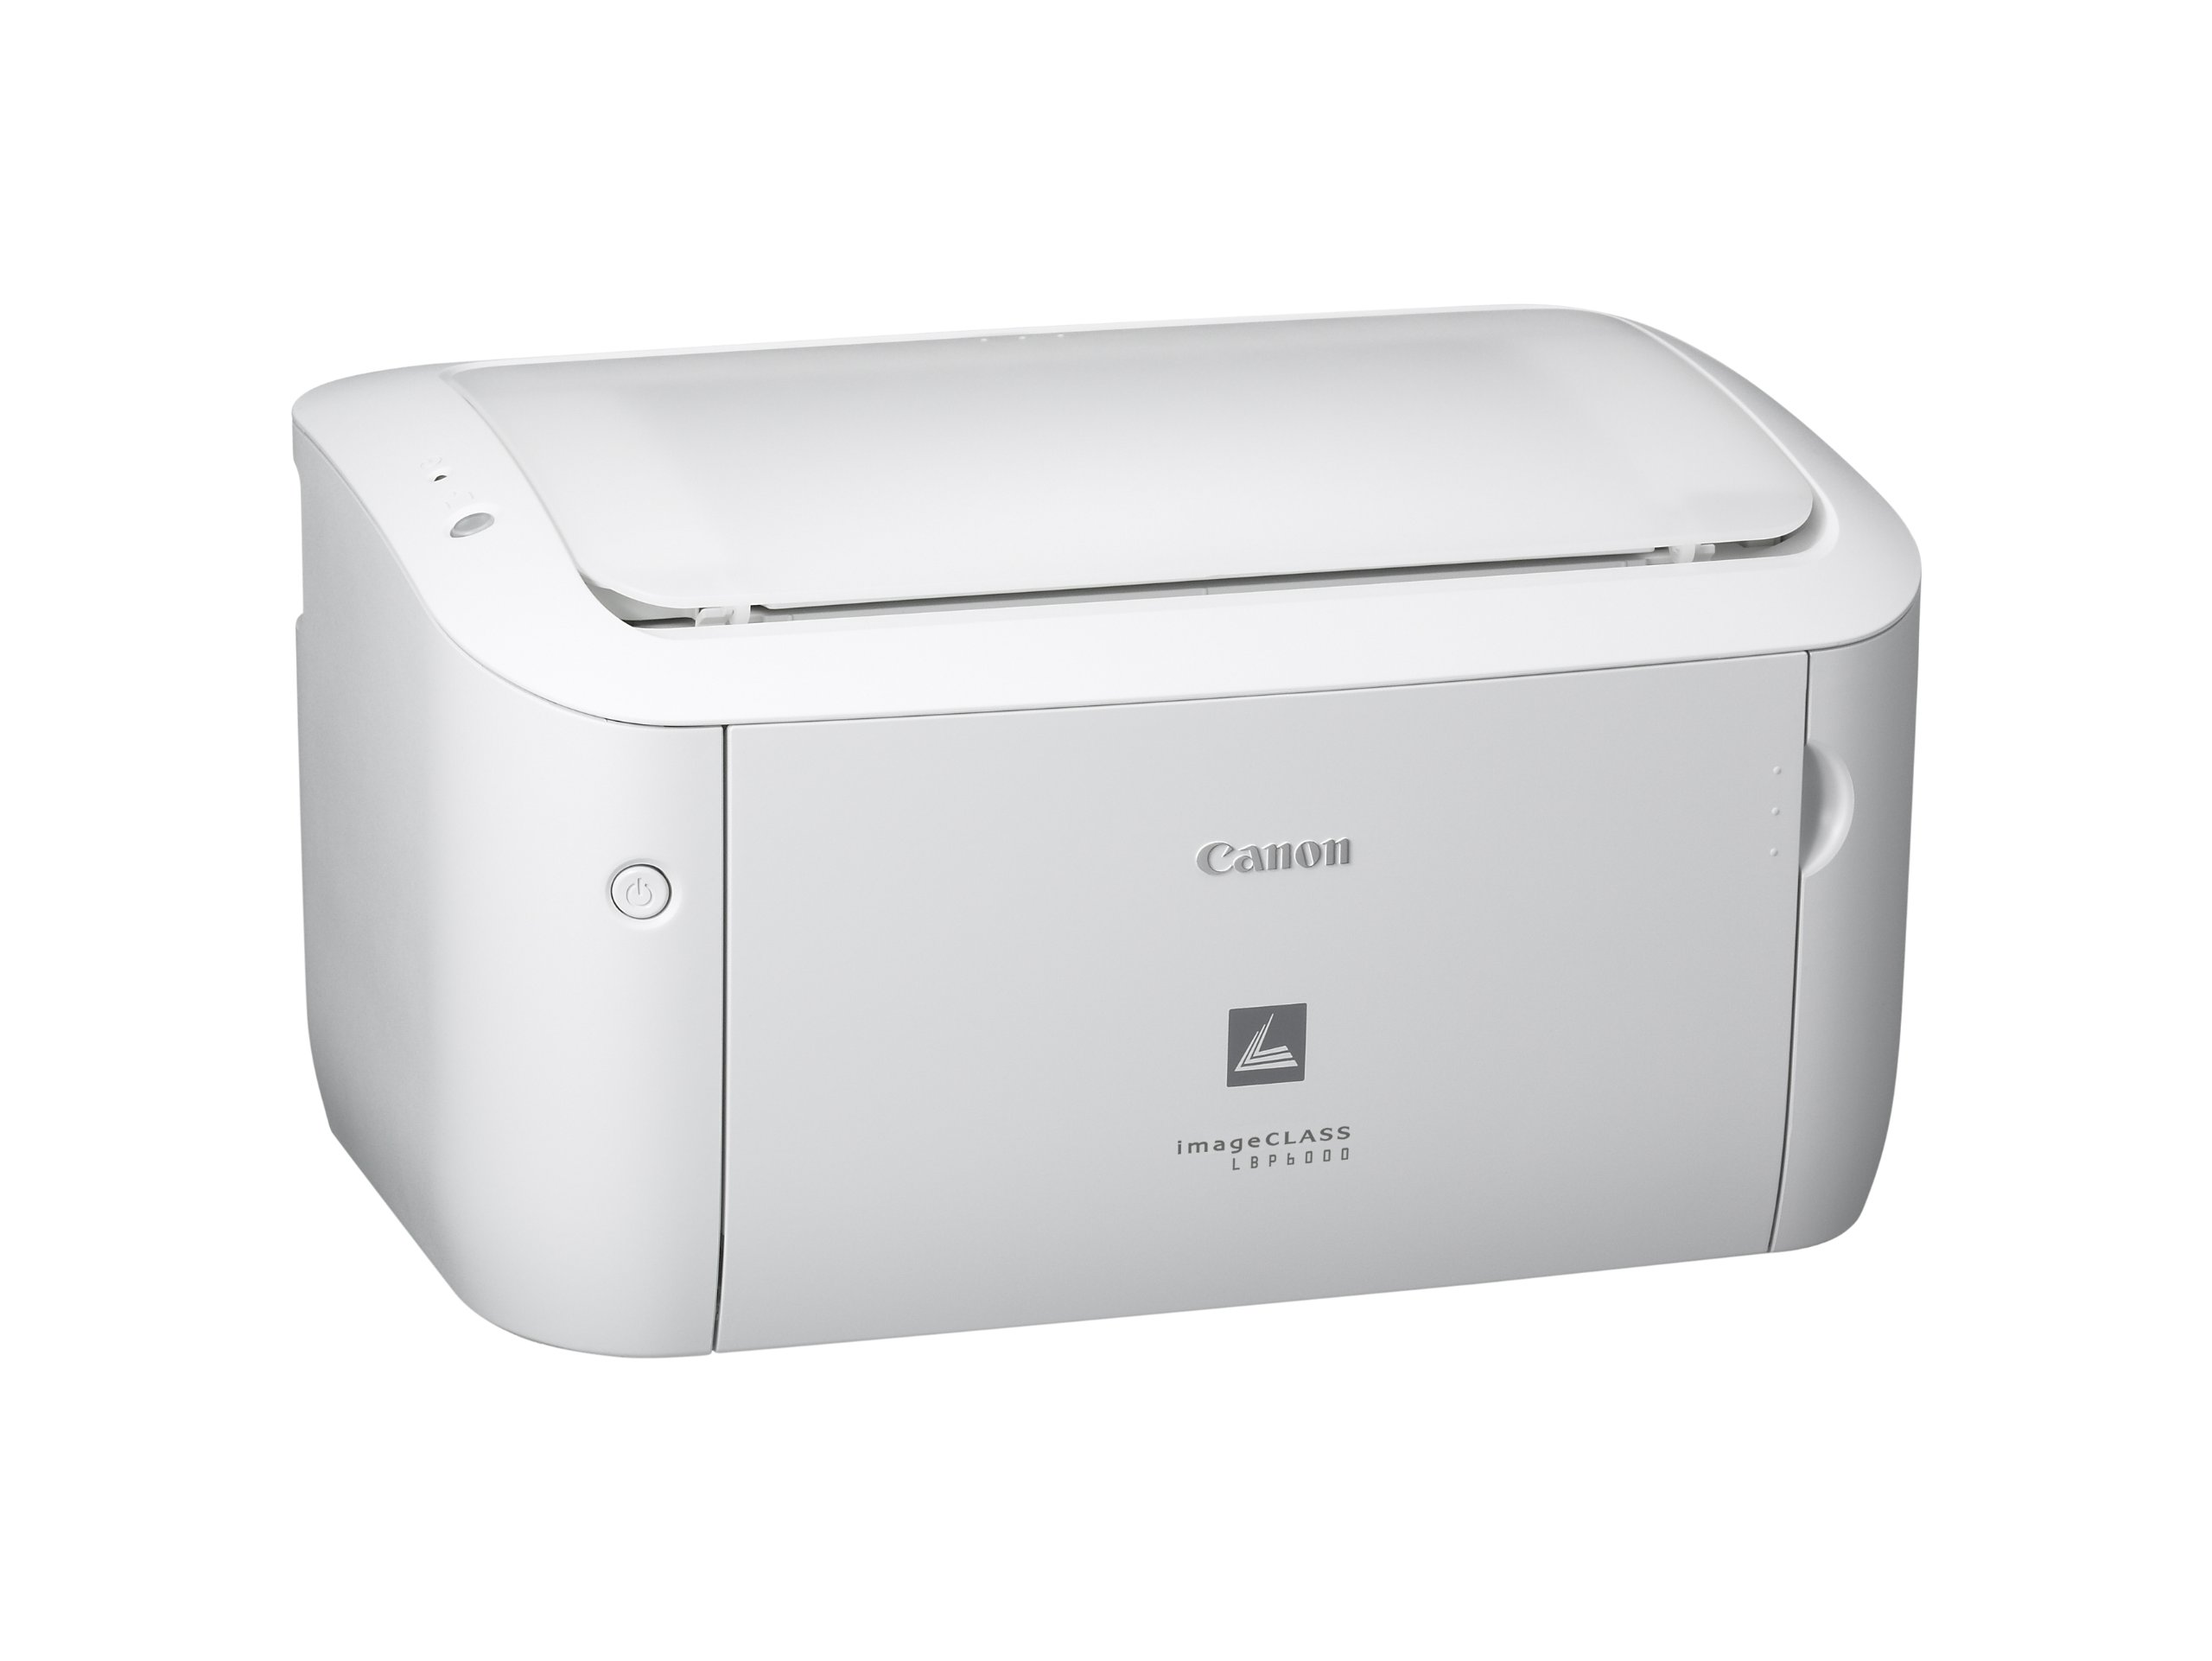 Canon imageCLASS LBP6000 Compact Laser Printer (Discontinued by Manufacturer) by Canon (Image #2)